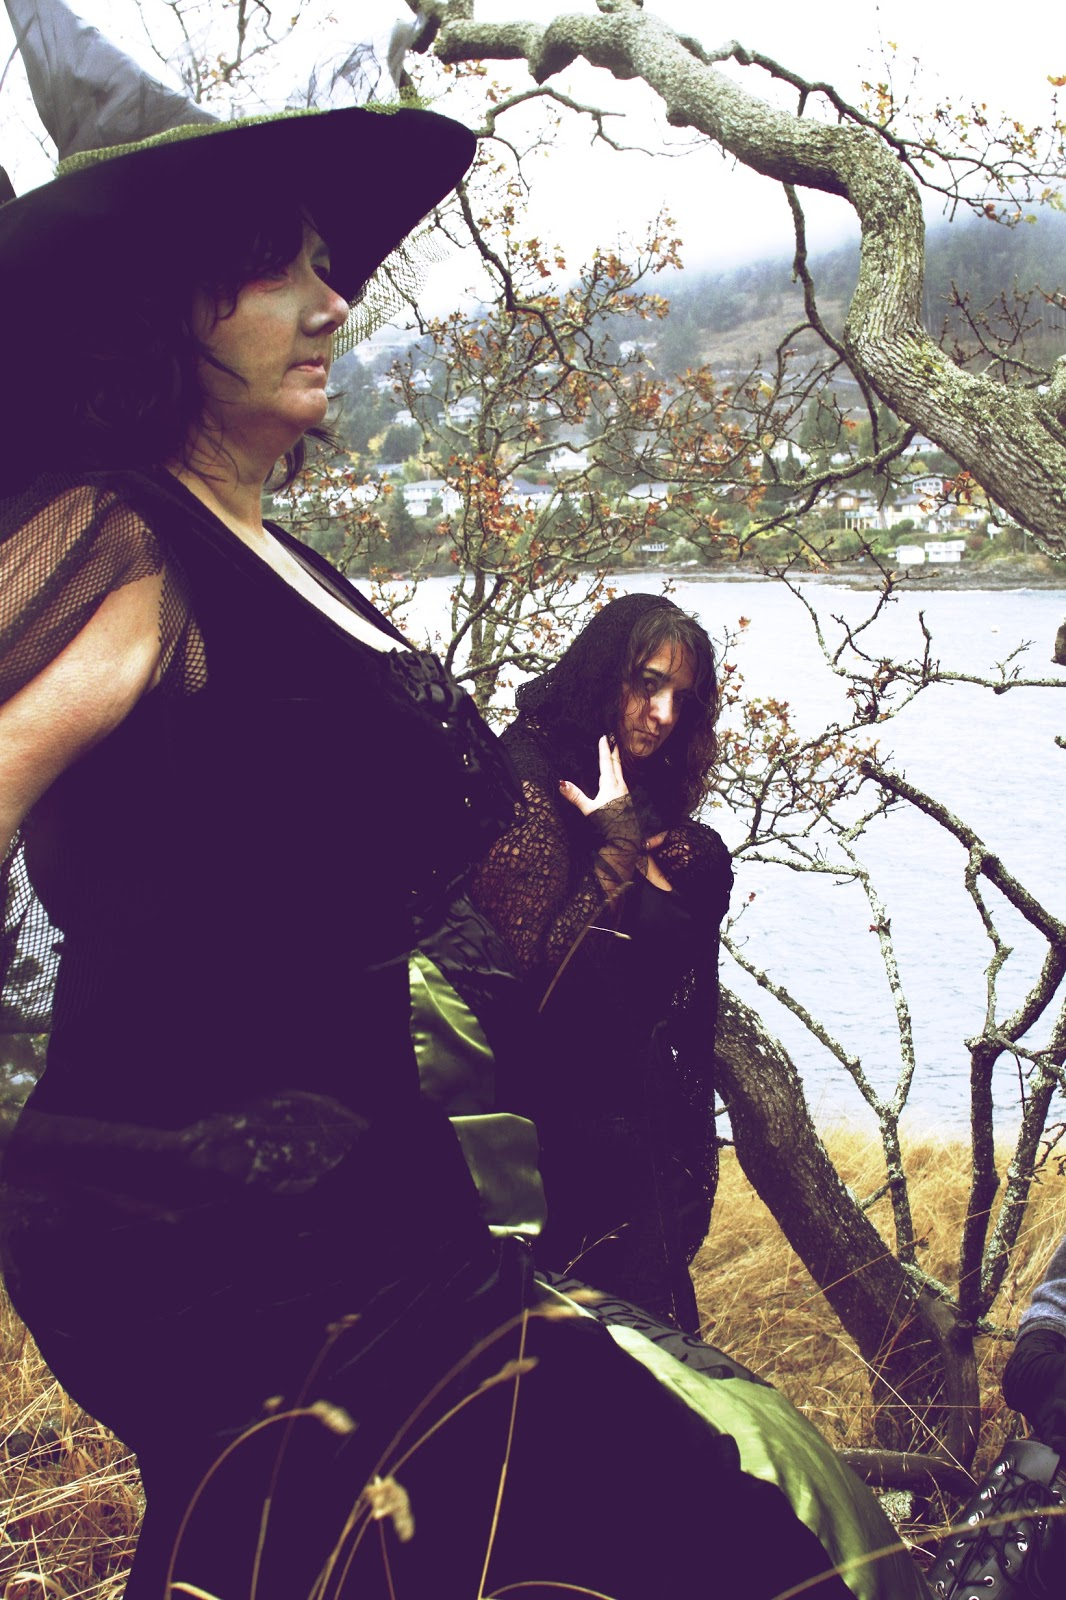 witches in the woods by lisarey photography nanaimo witch